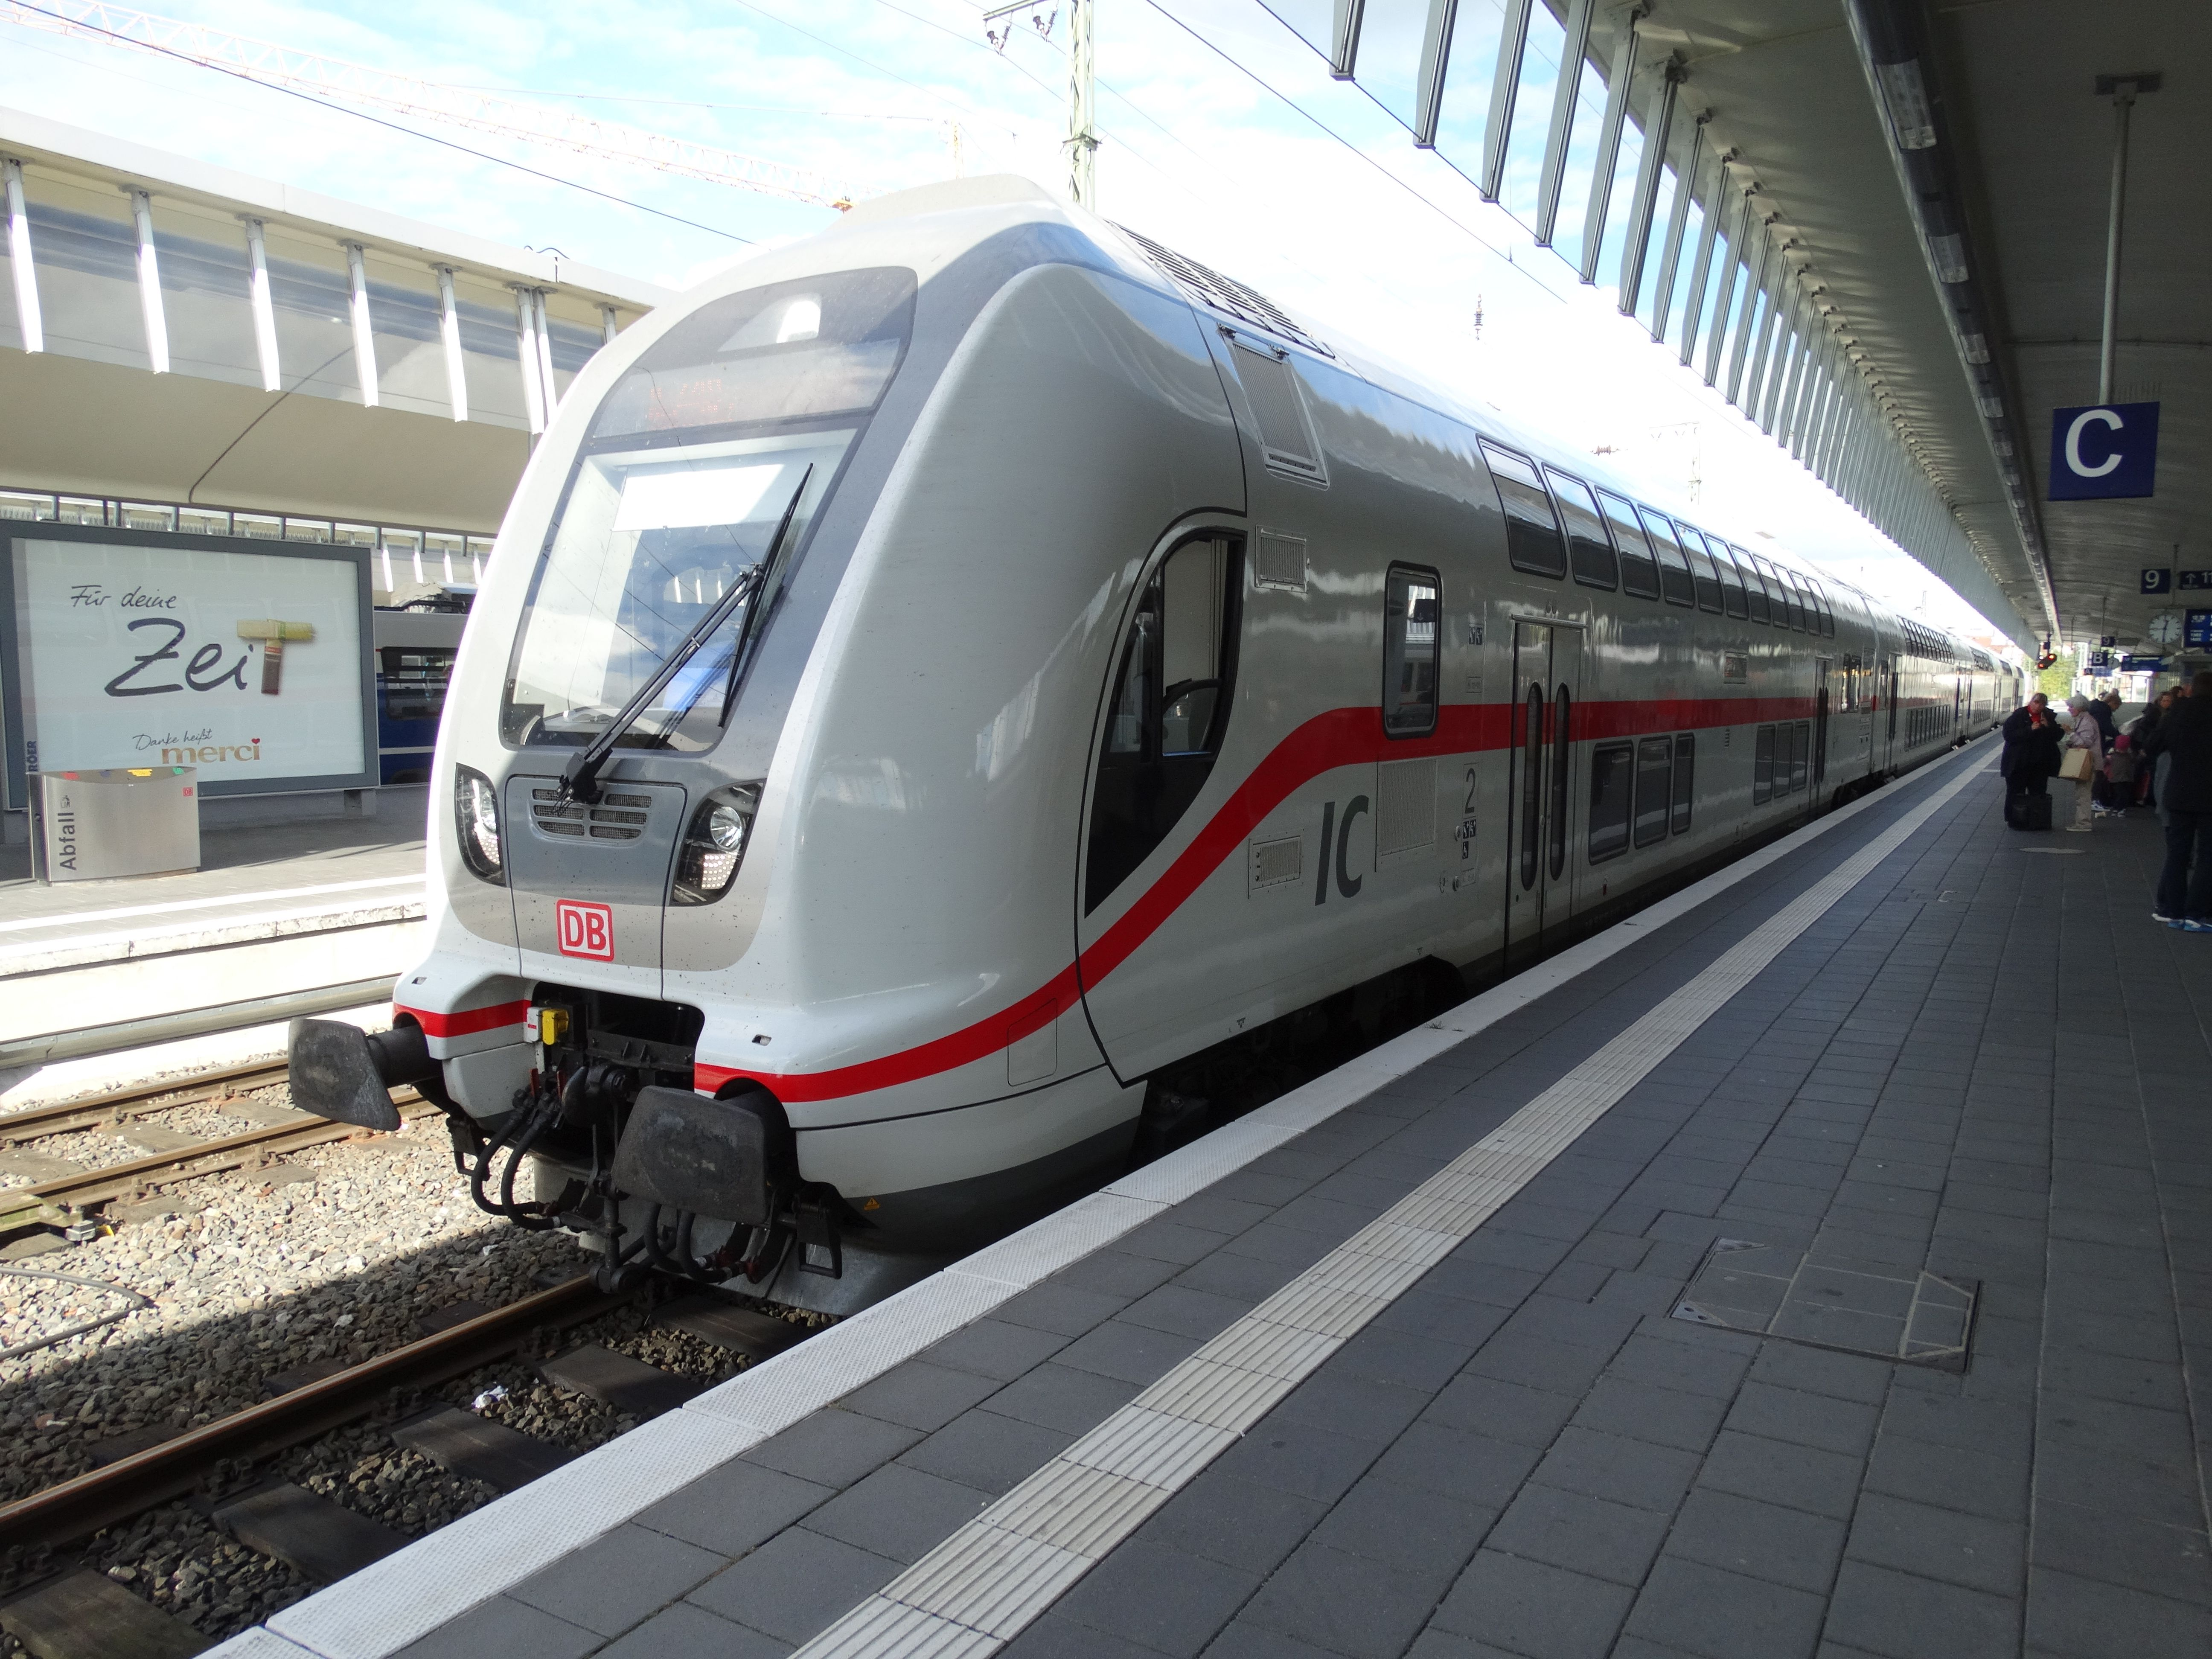 Railpics club - FUNET railway pictures archive - Germany